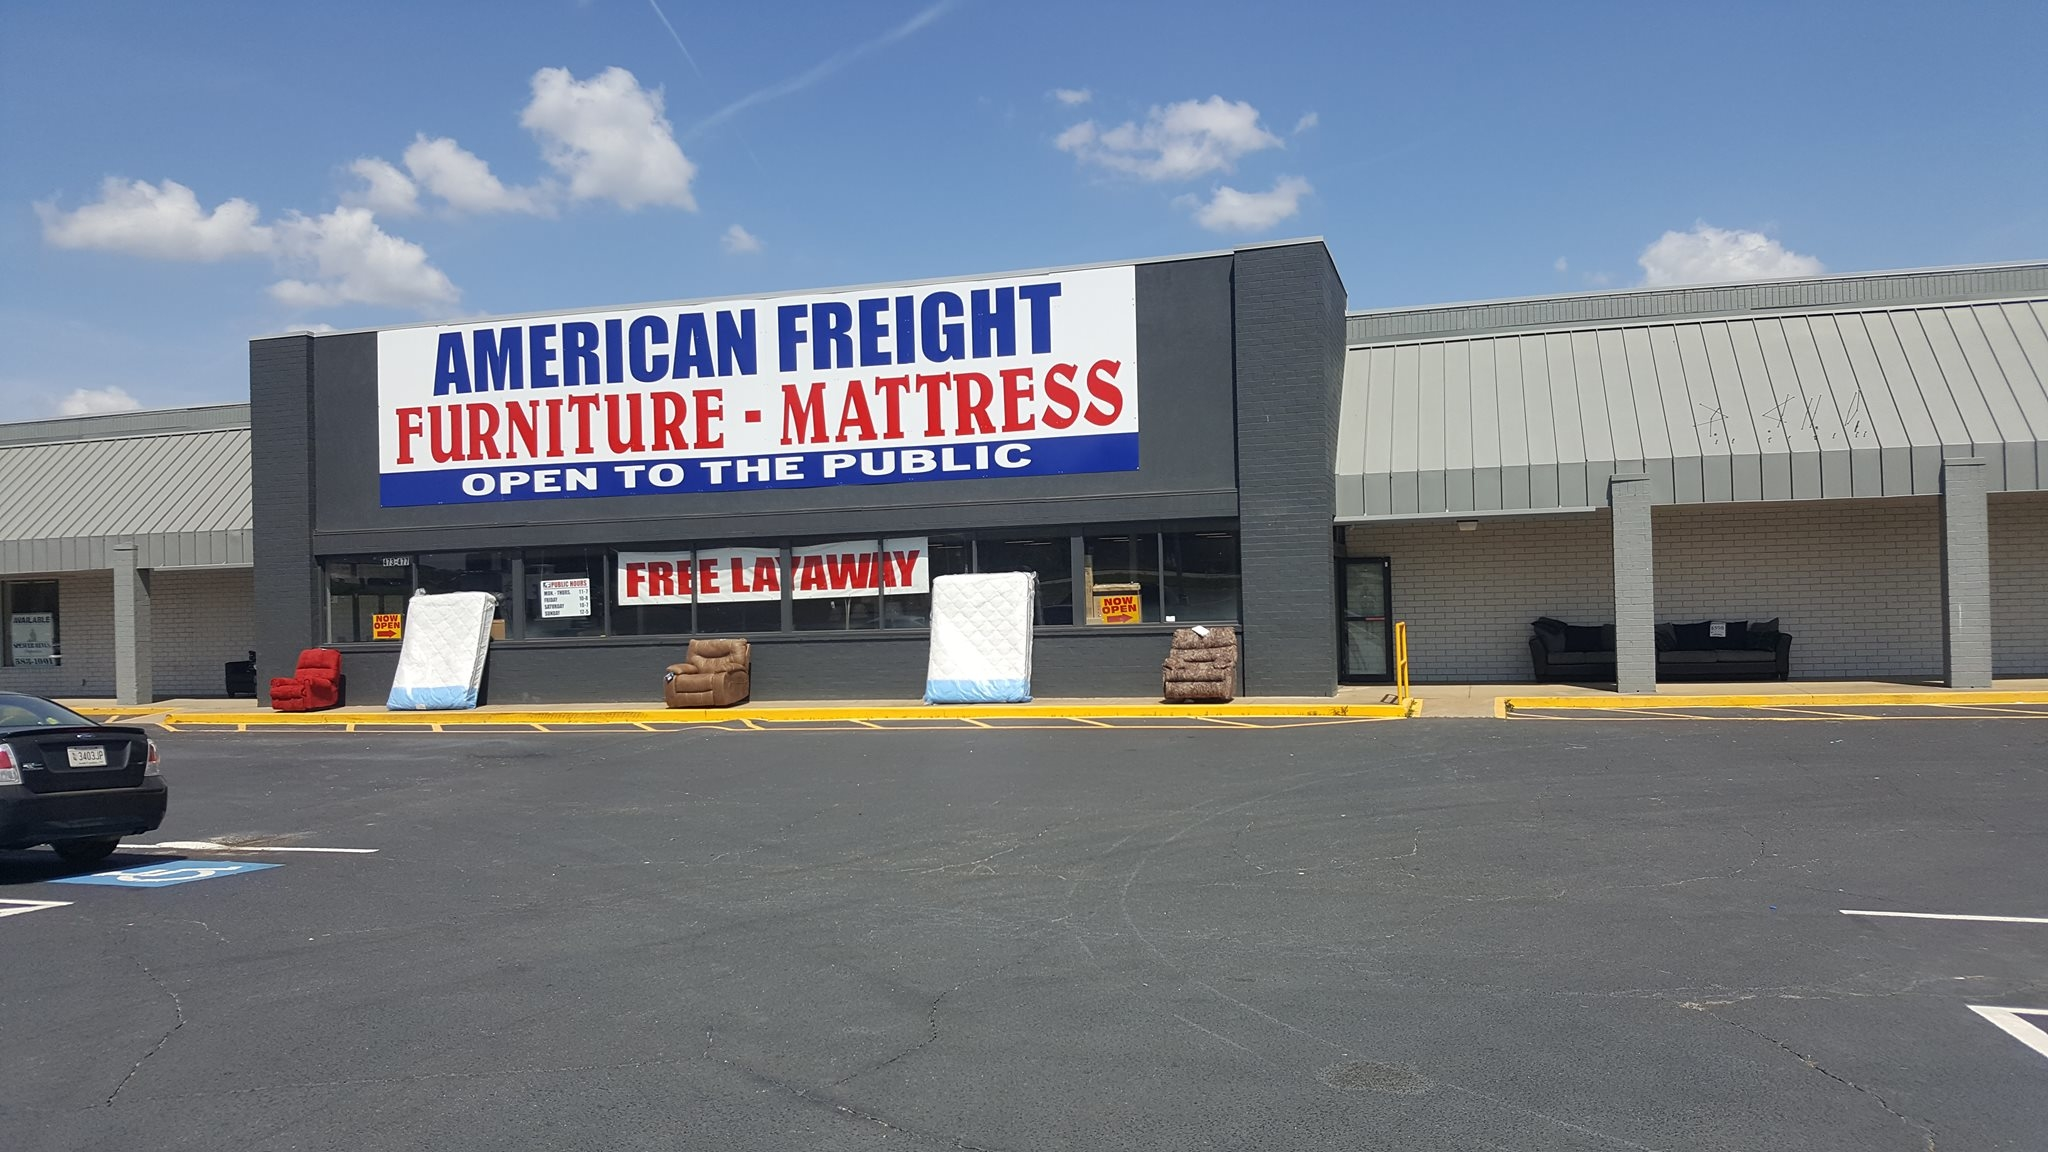 American Freight Furniture And Mattress In Spartanburg, SC